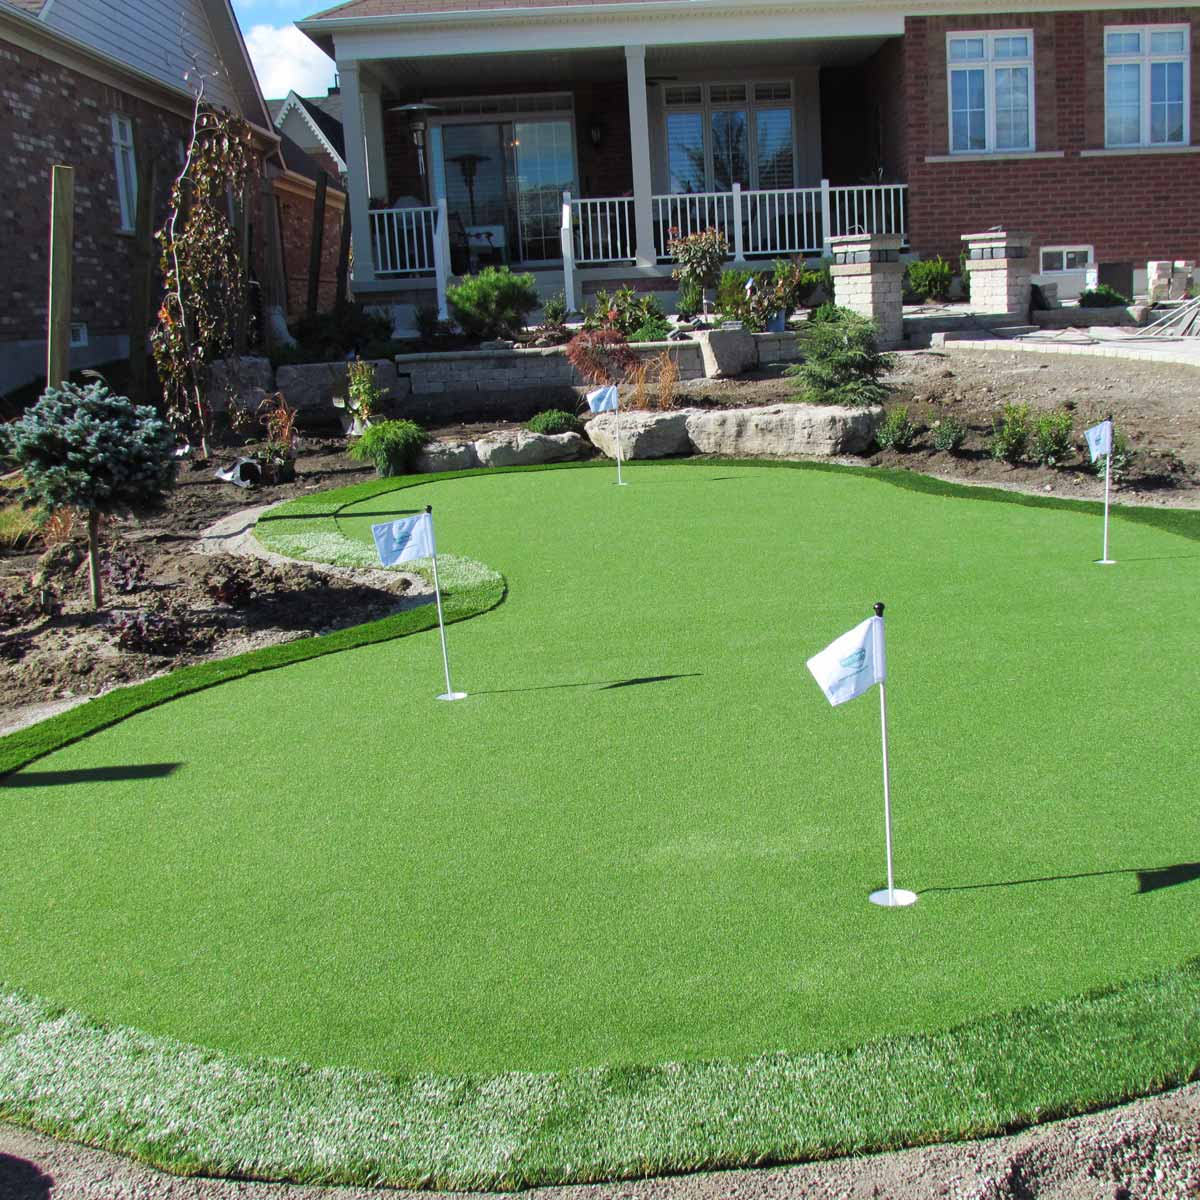 19 Crazy Cool Backyard Putting Greens The Family Handyman throughout 11 Some of the Coolest Concepts of How to Upgrade How Much Does It Cost To Landscape A Backyard